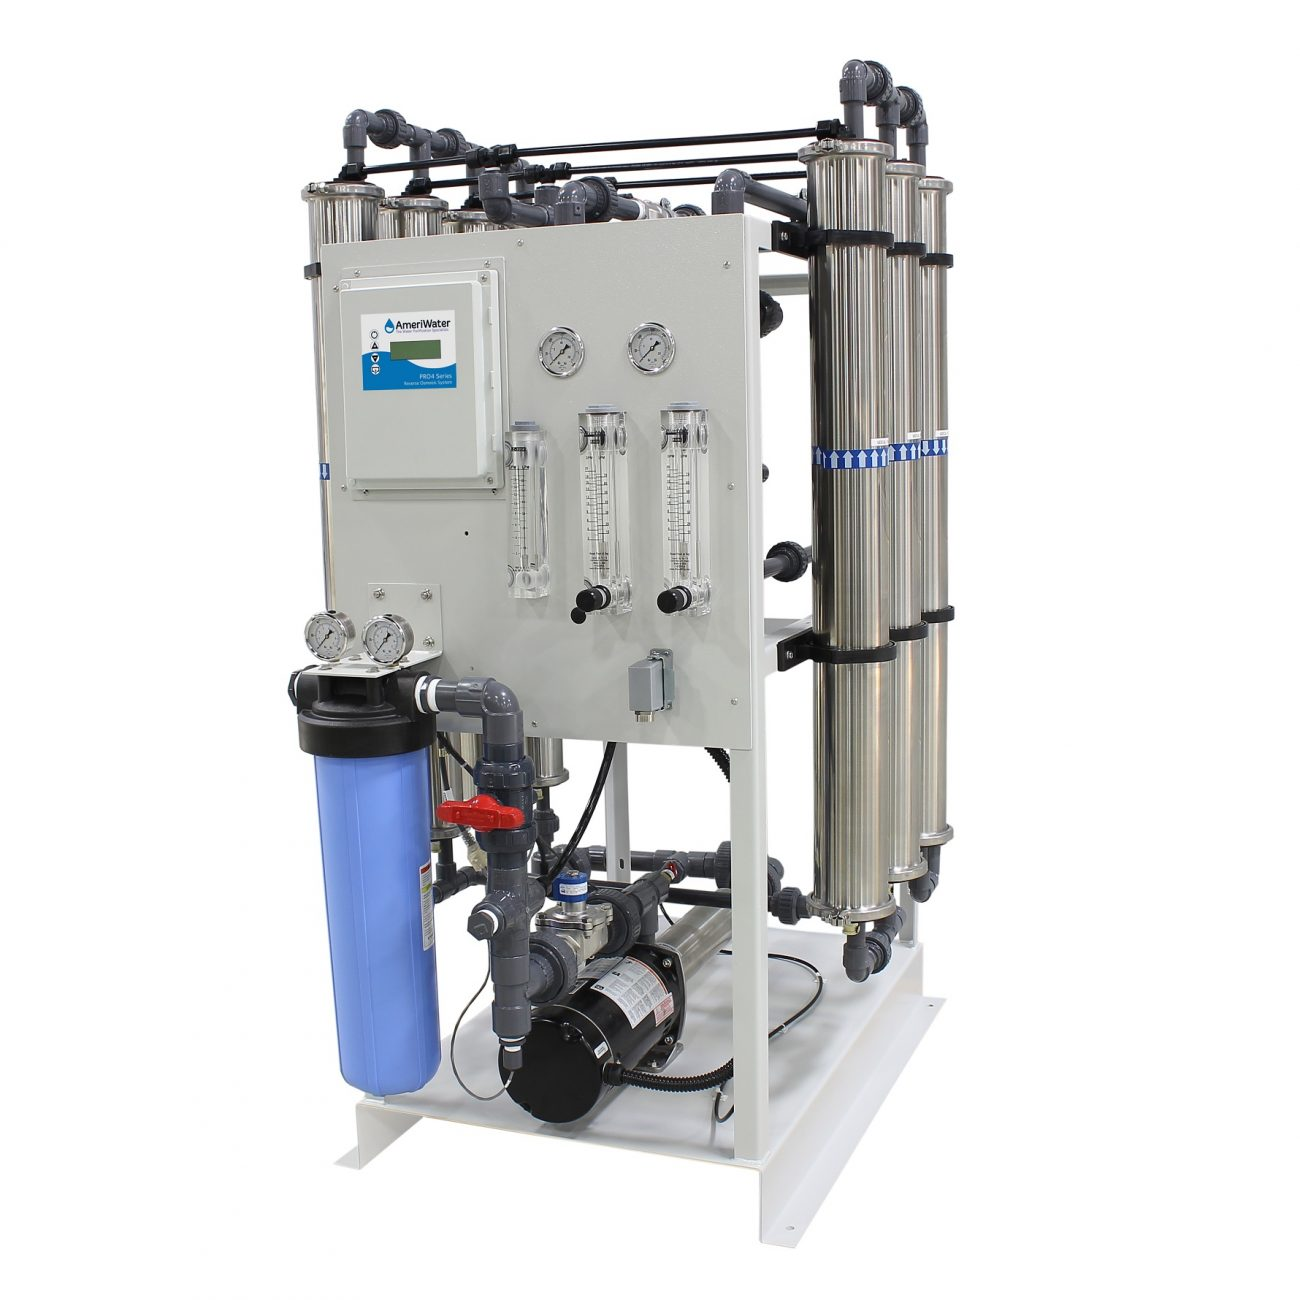 C Amp I Reverse Osmosis Systems 2 400 Up To 19 200 Gpd